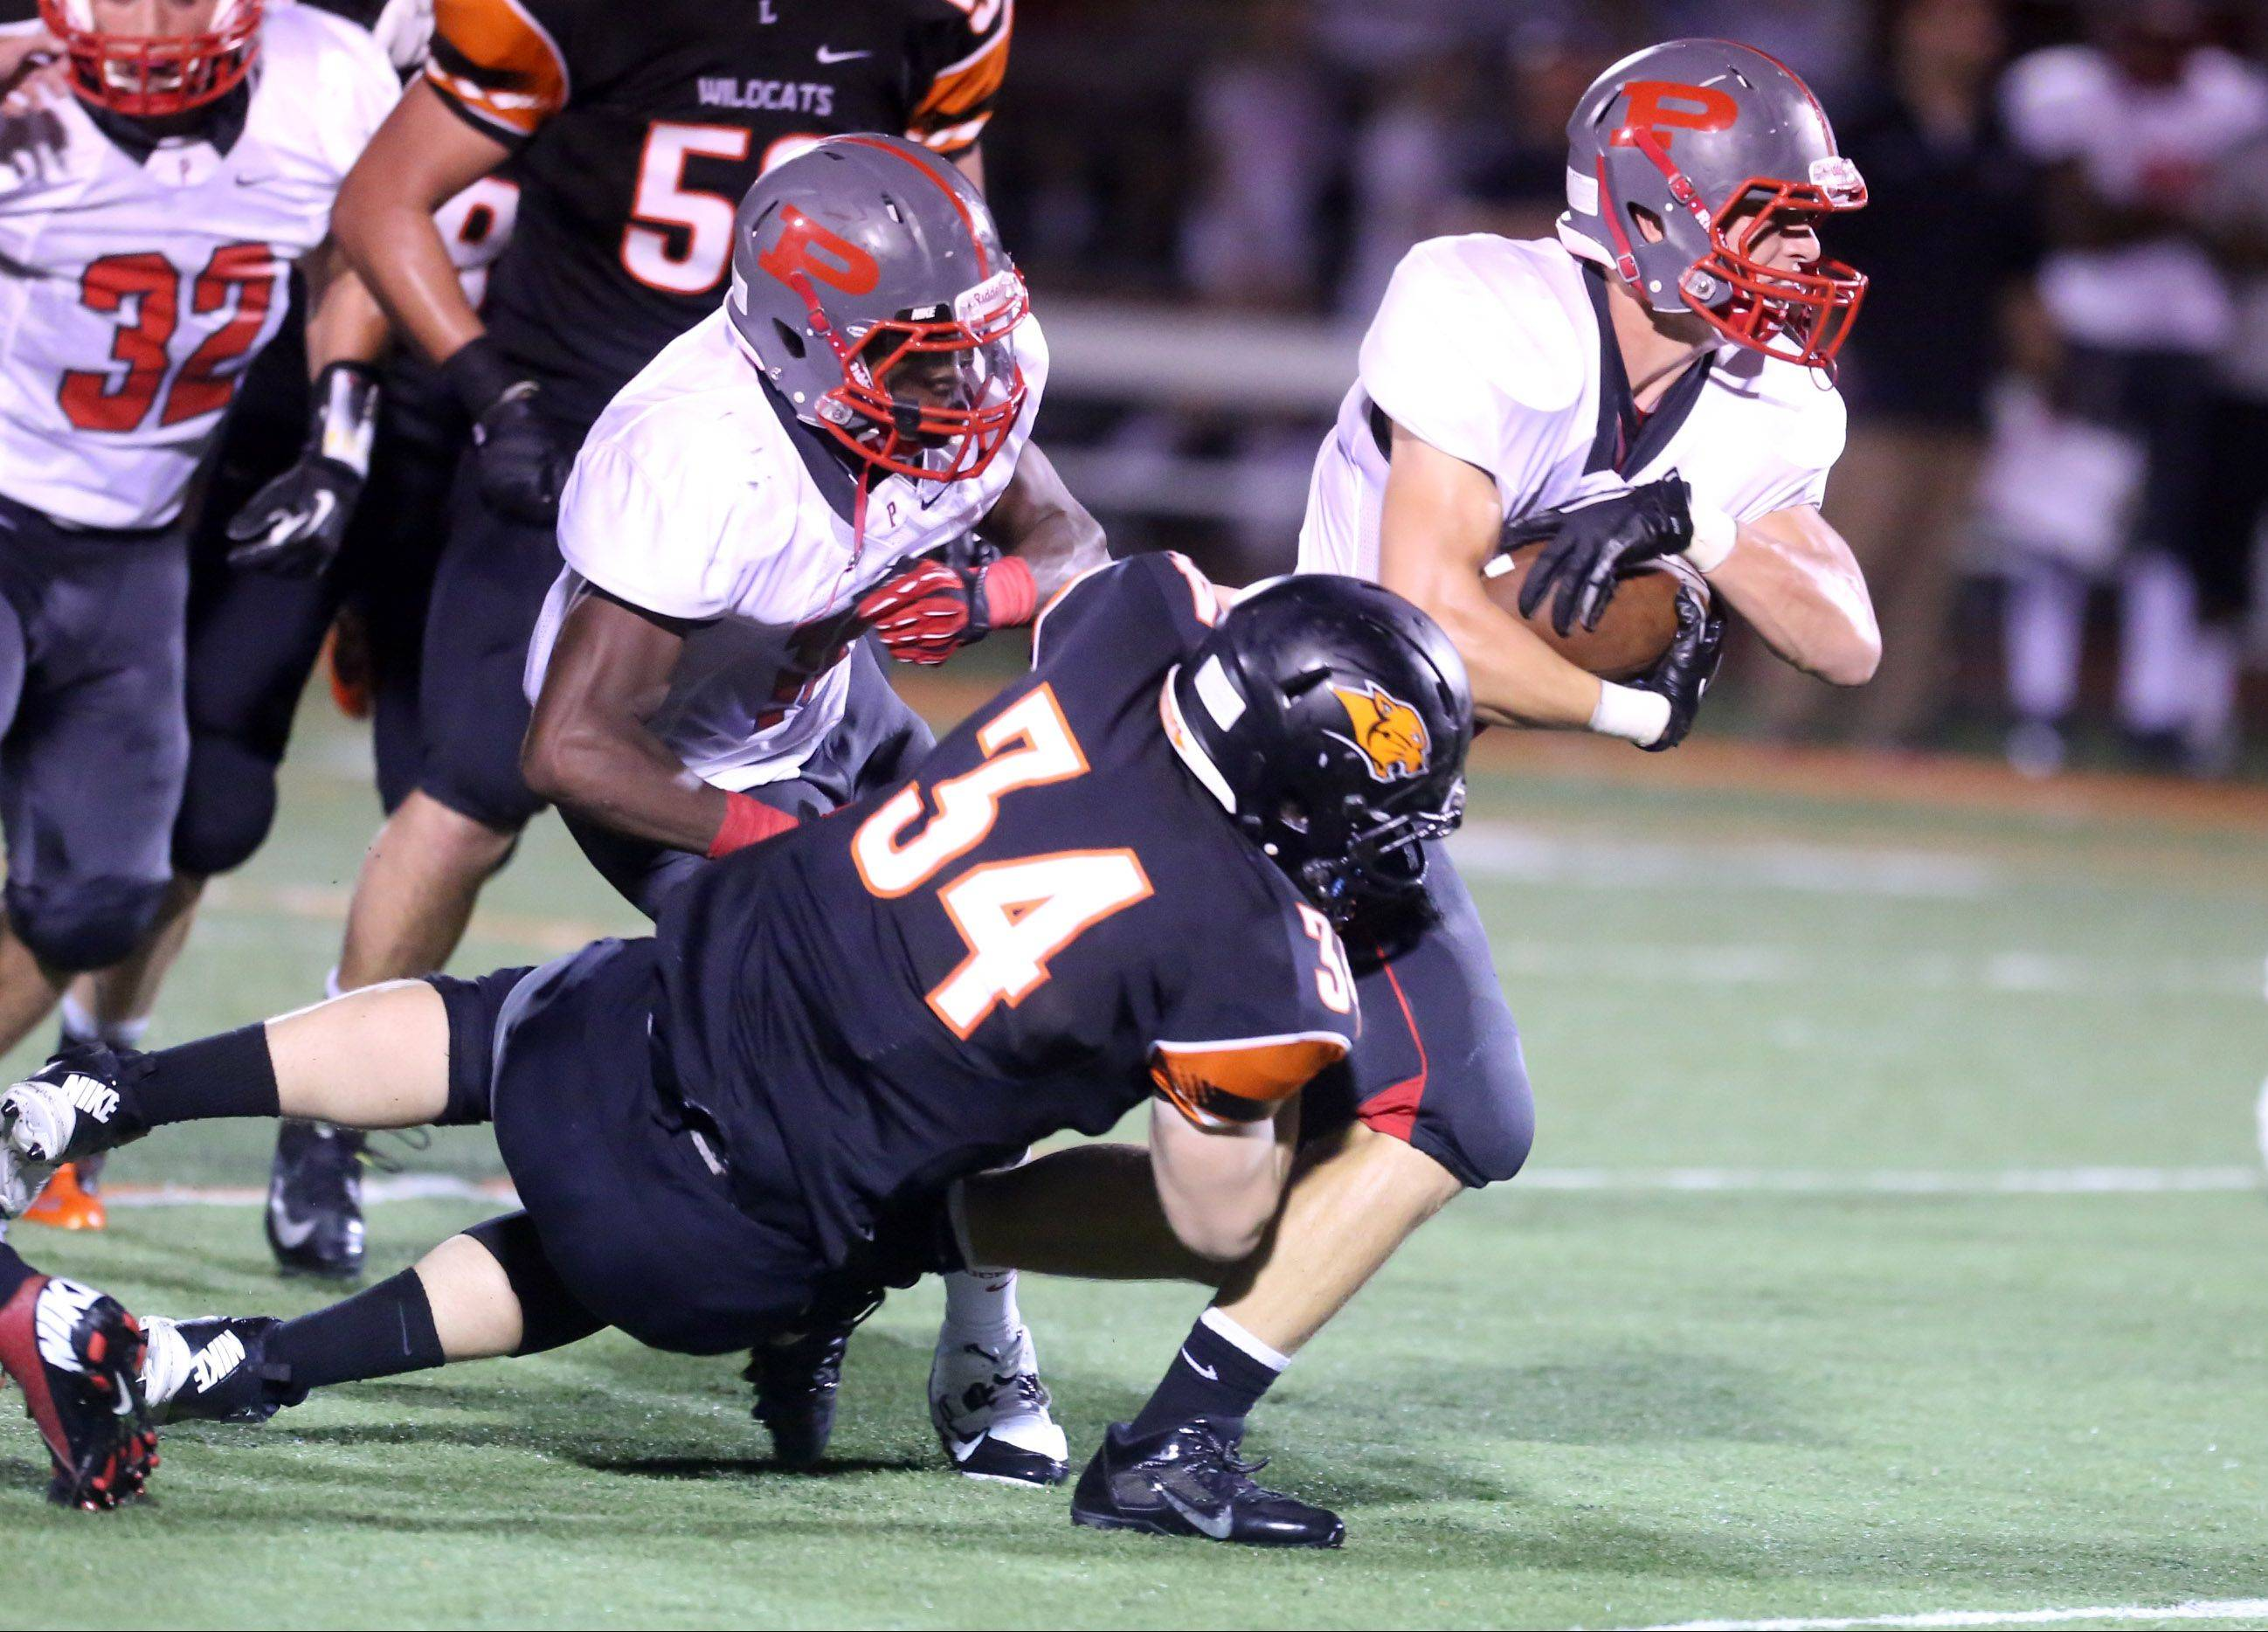 Palatine's Joshua Mackie is dragged down by Libertyville defender Matt Pierson during the first half at Libertyville on Friday.